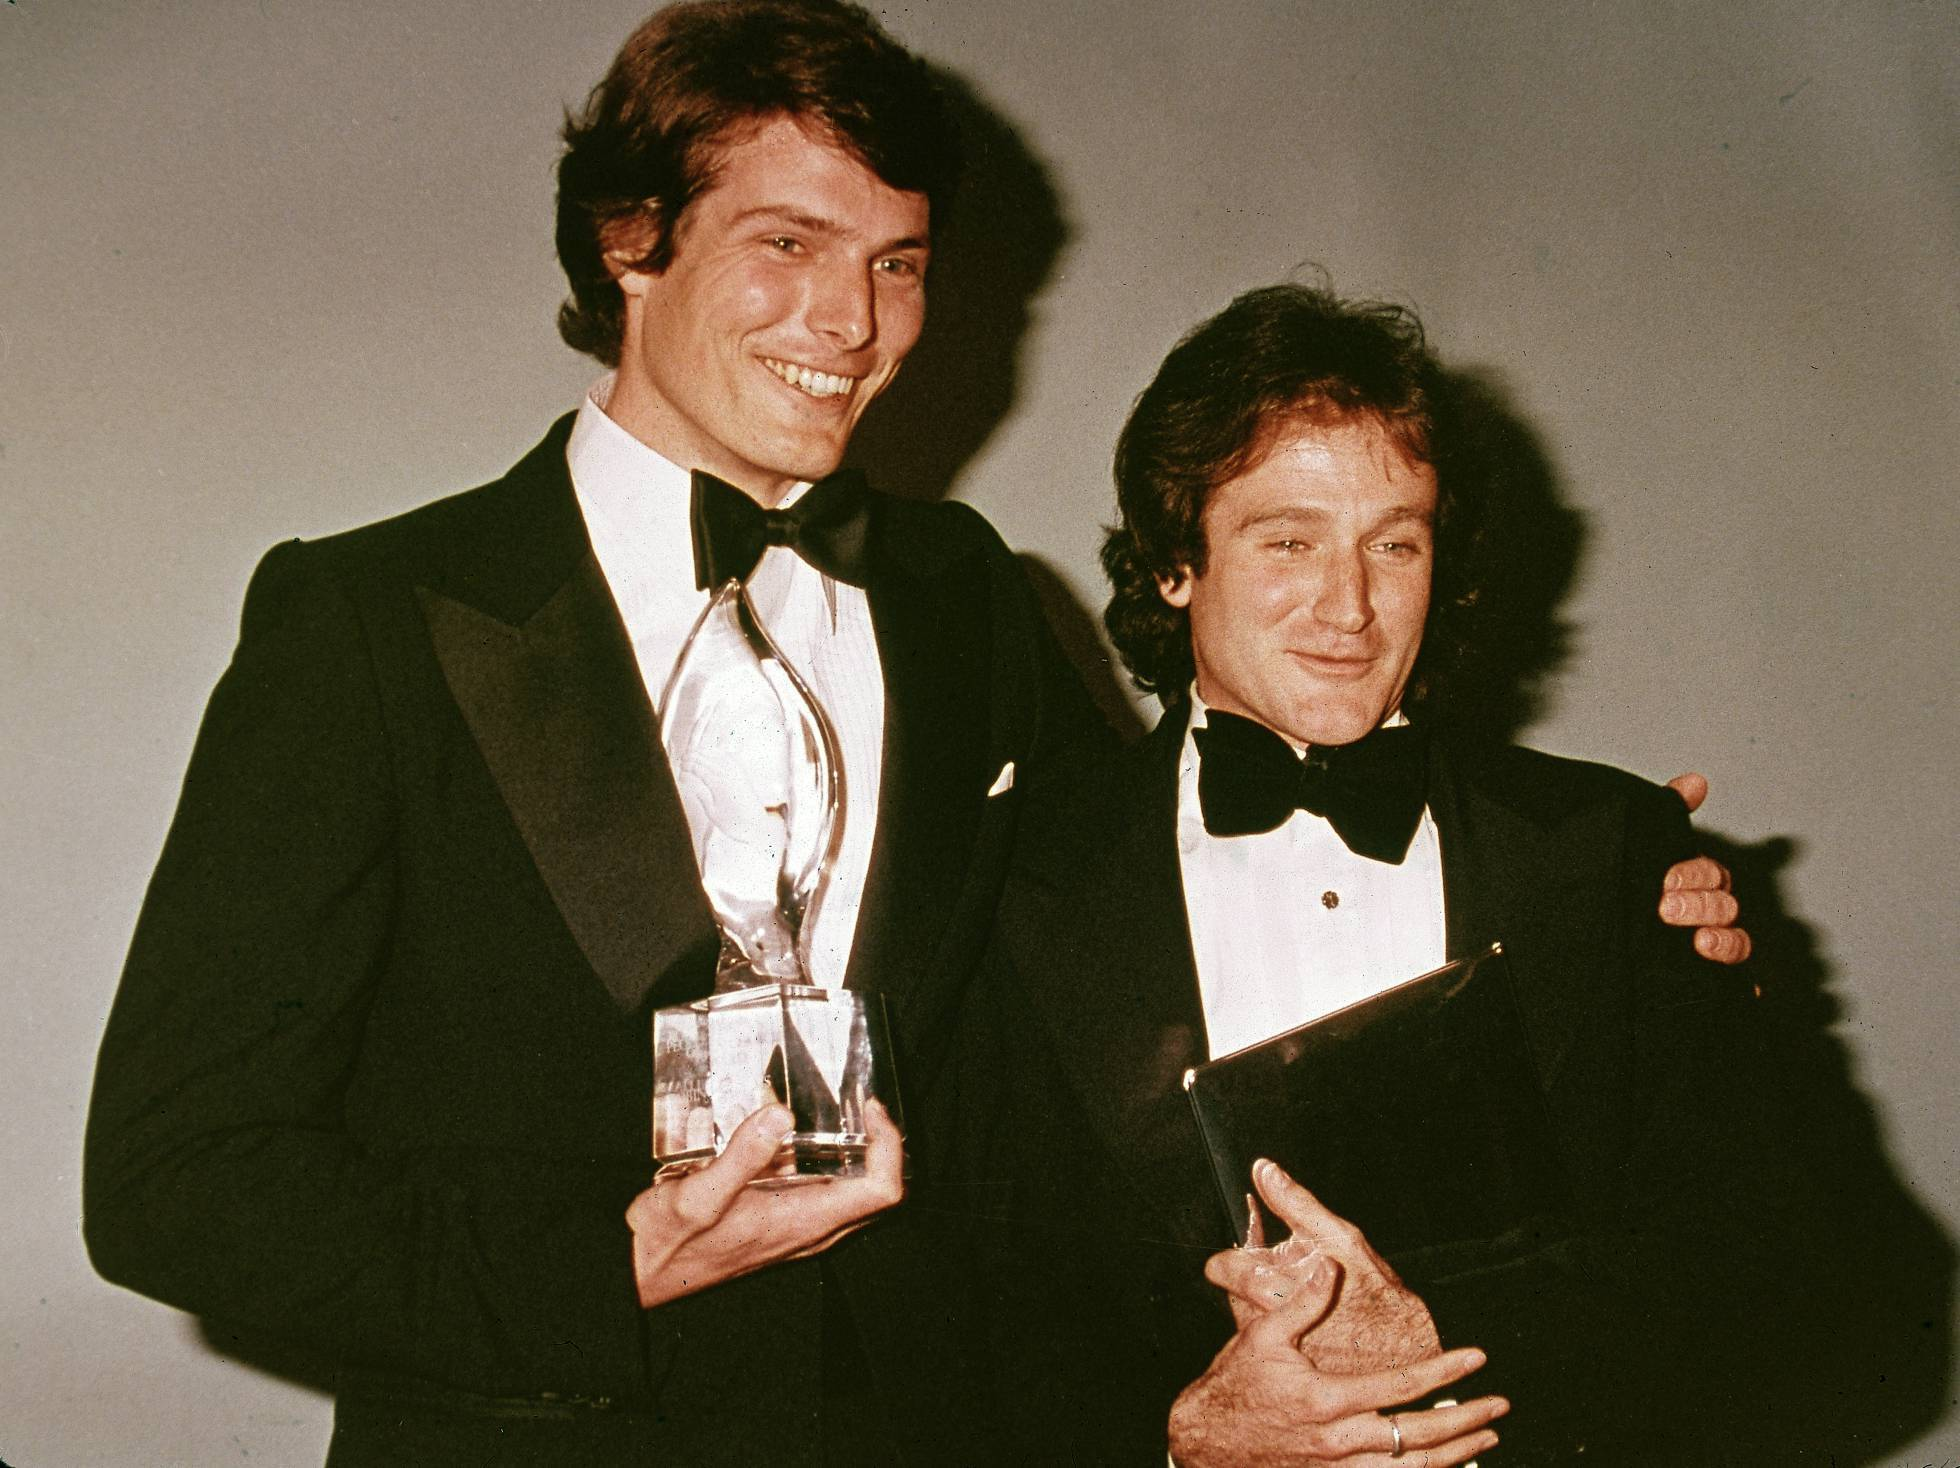 Christopher Reeve with his friend, actor Robin Williams, at the backstage of the People's Choice Awards in 1979. Photo: Getty